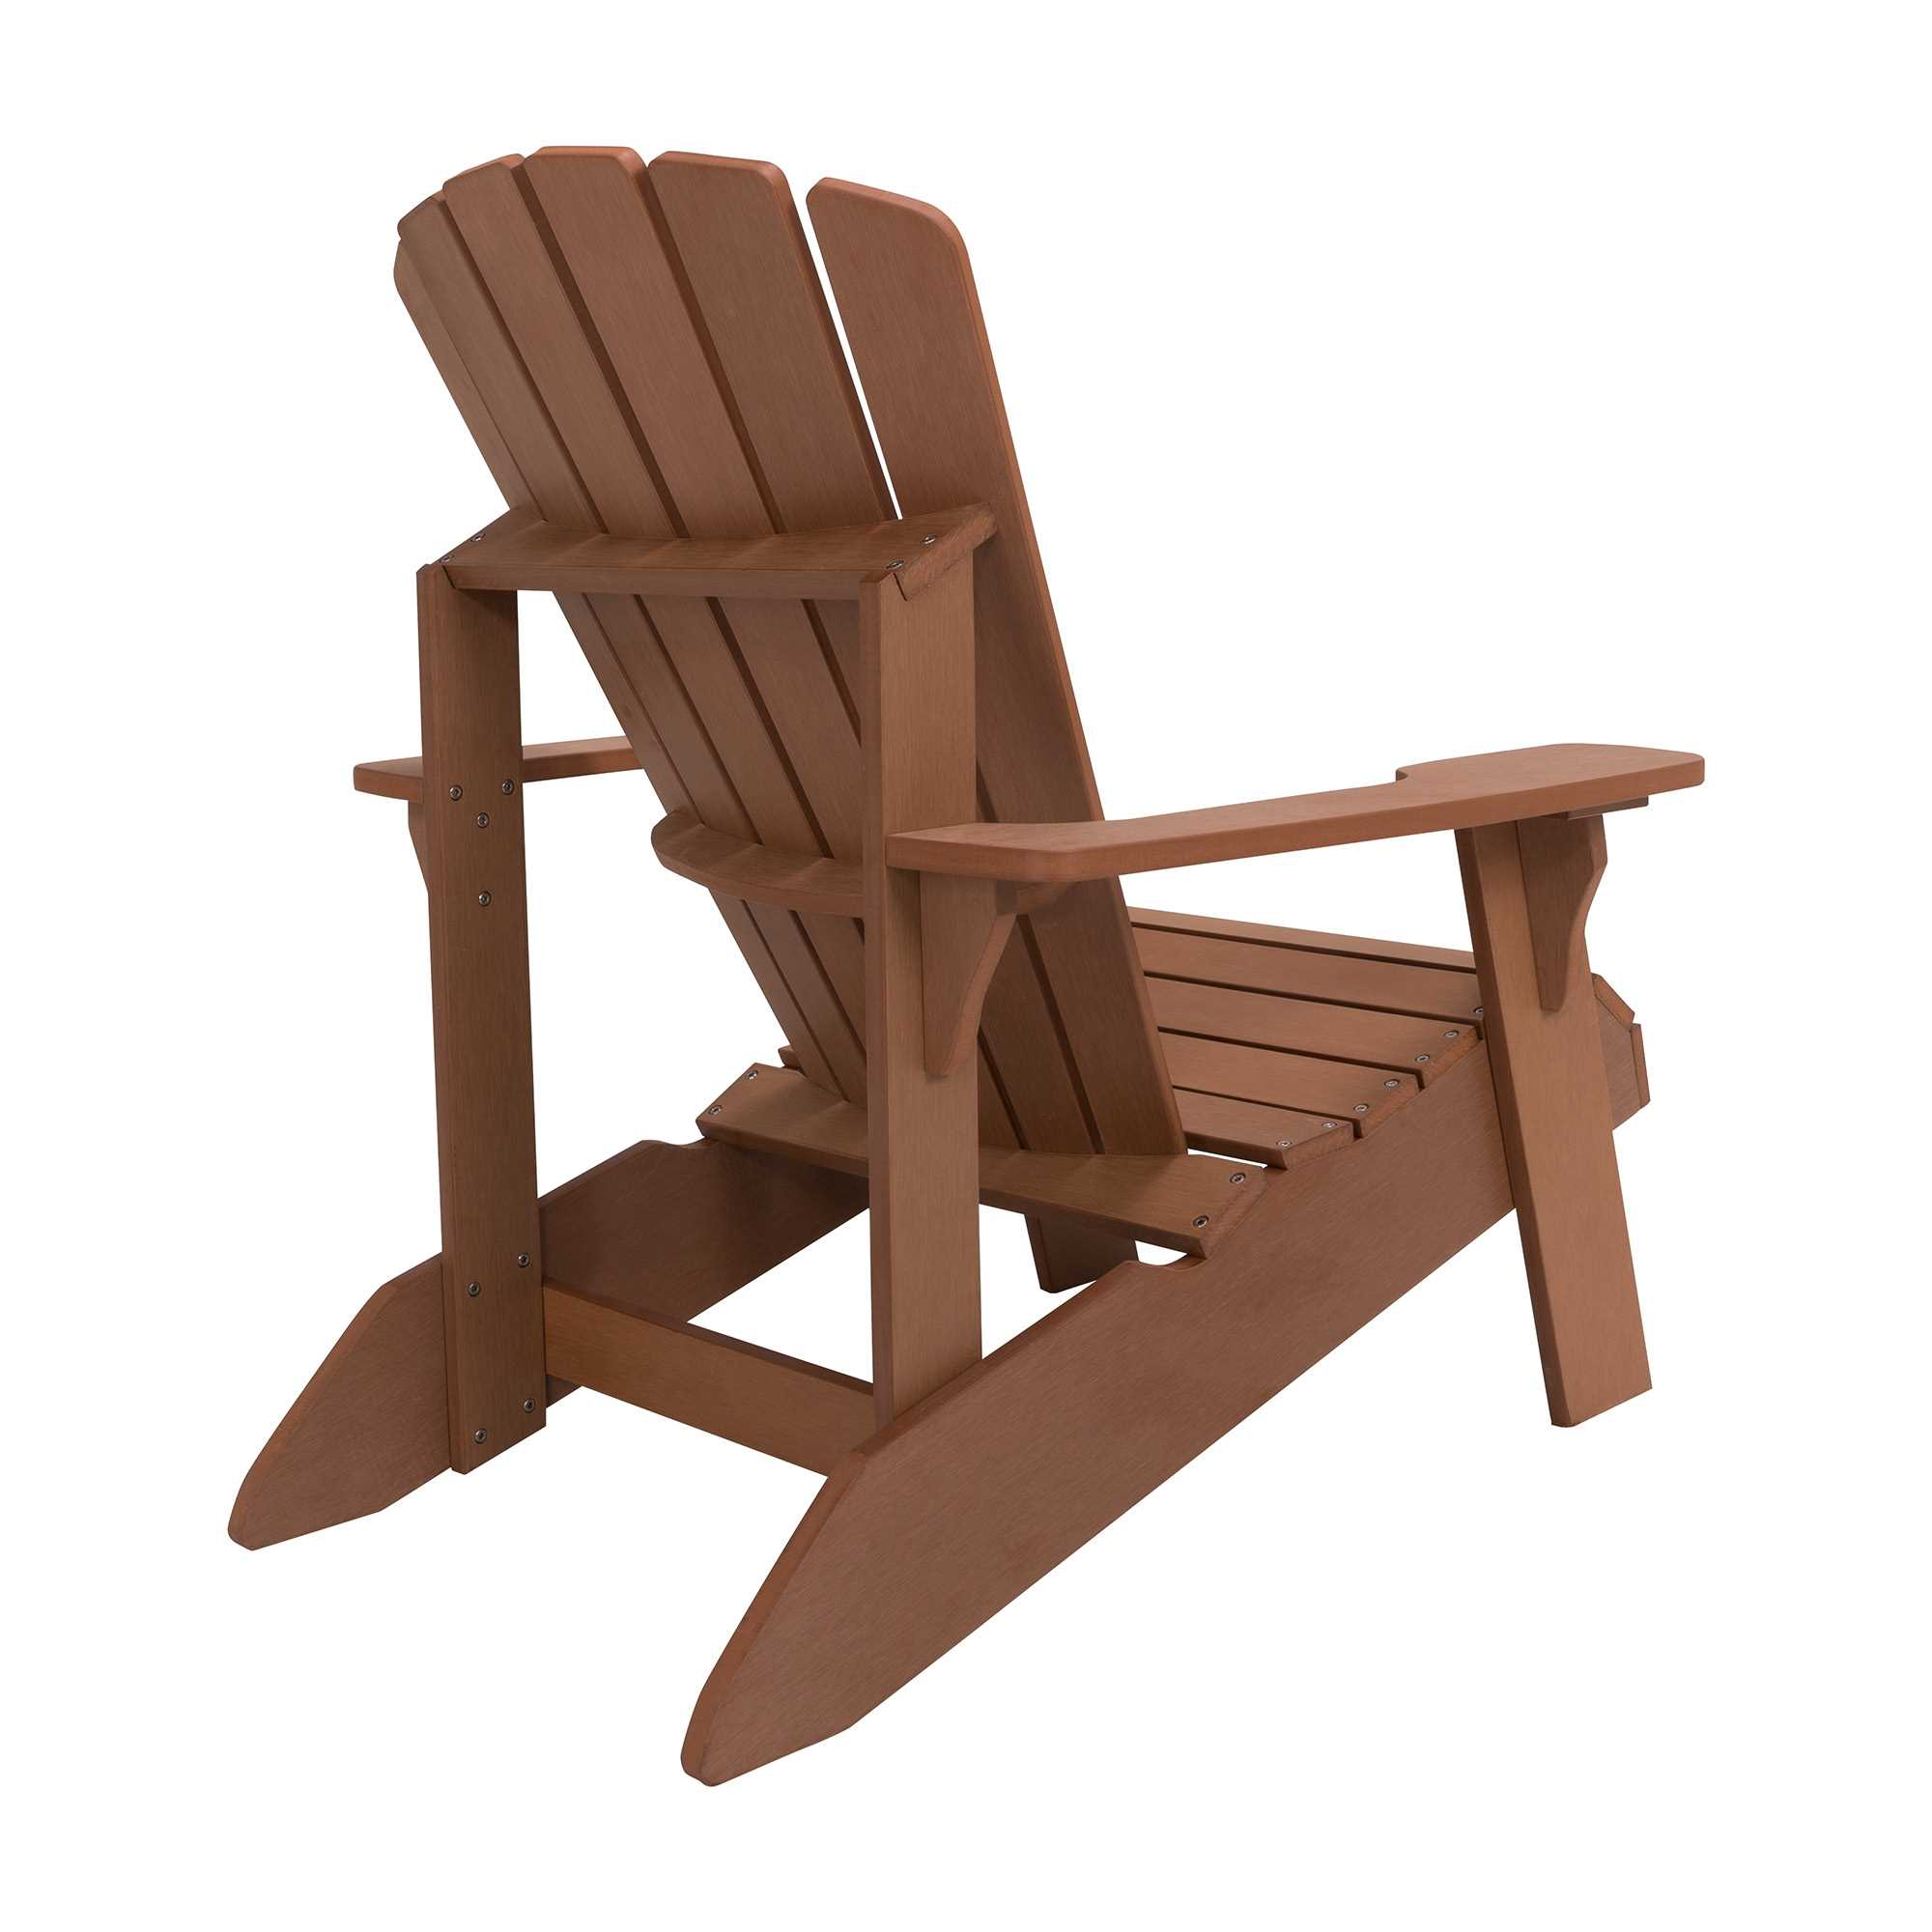 Lifetime Adirondack Chairs Lifetime Adirondack Wood Alternative Chair Brown 60064